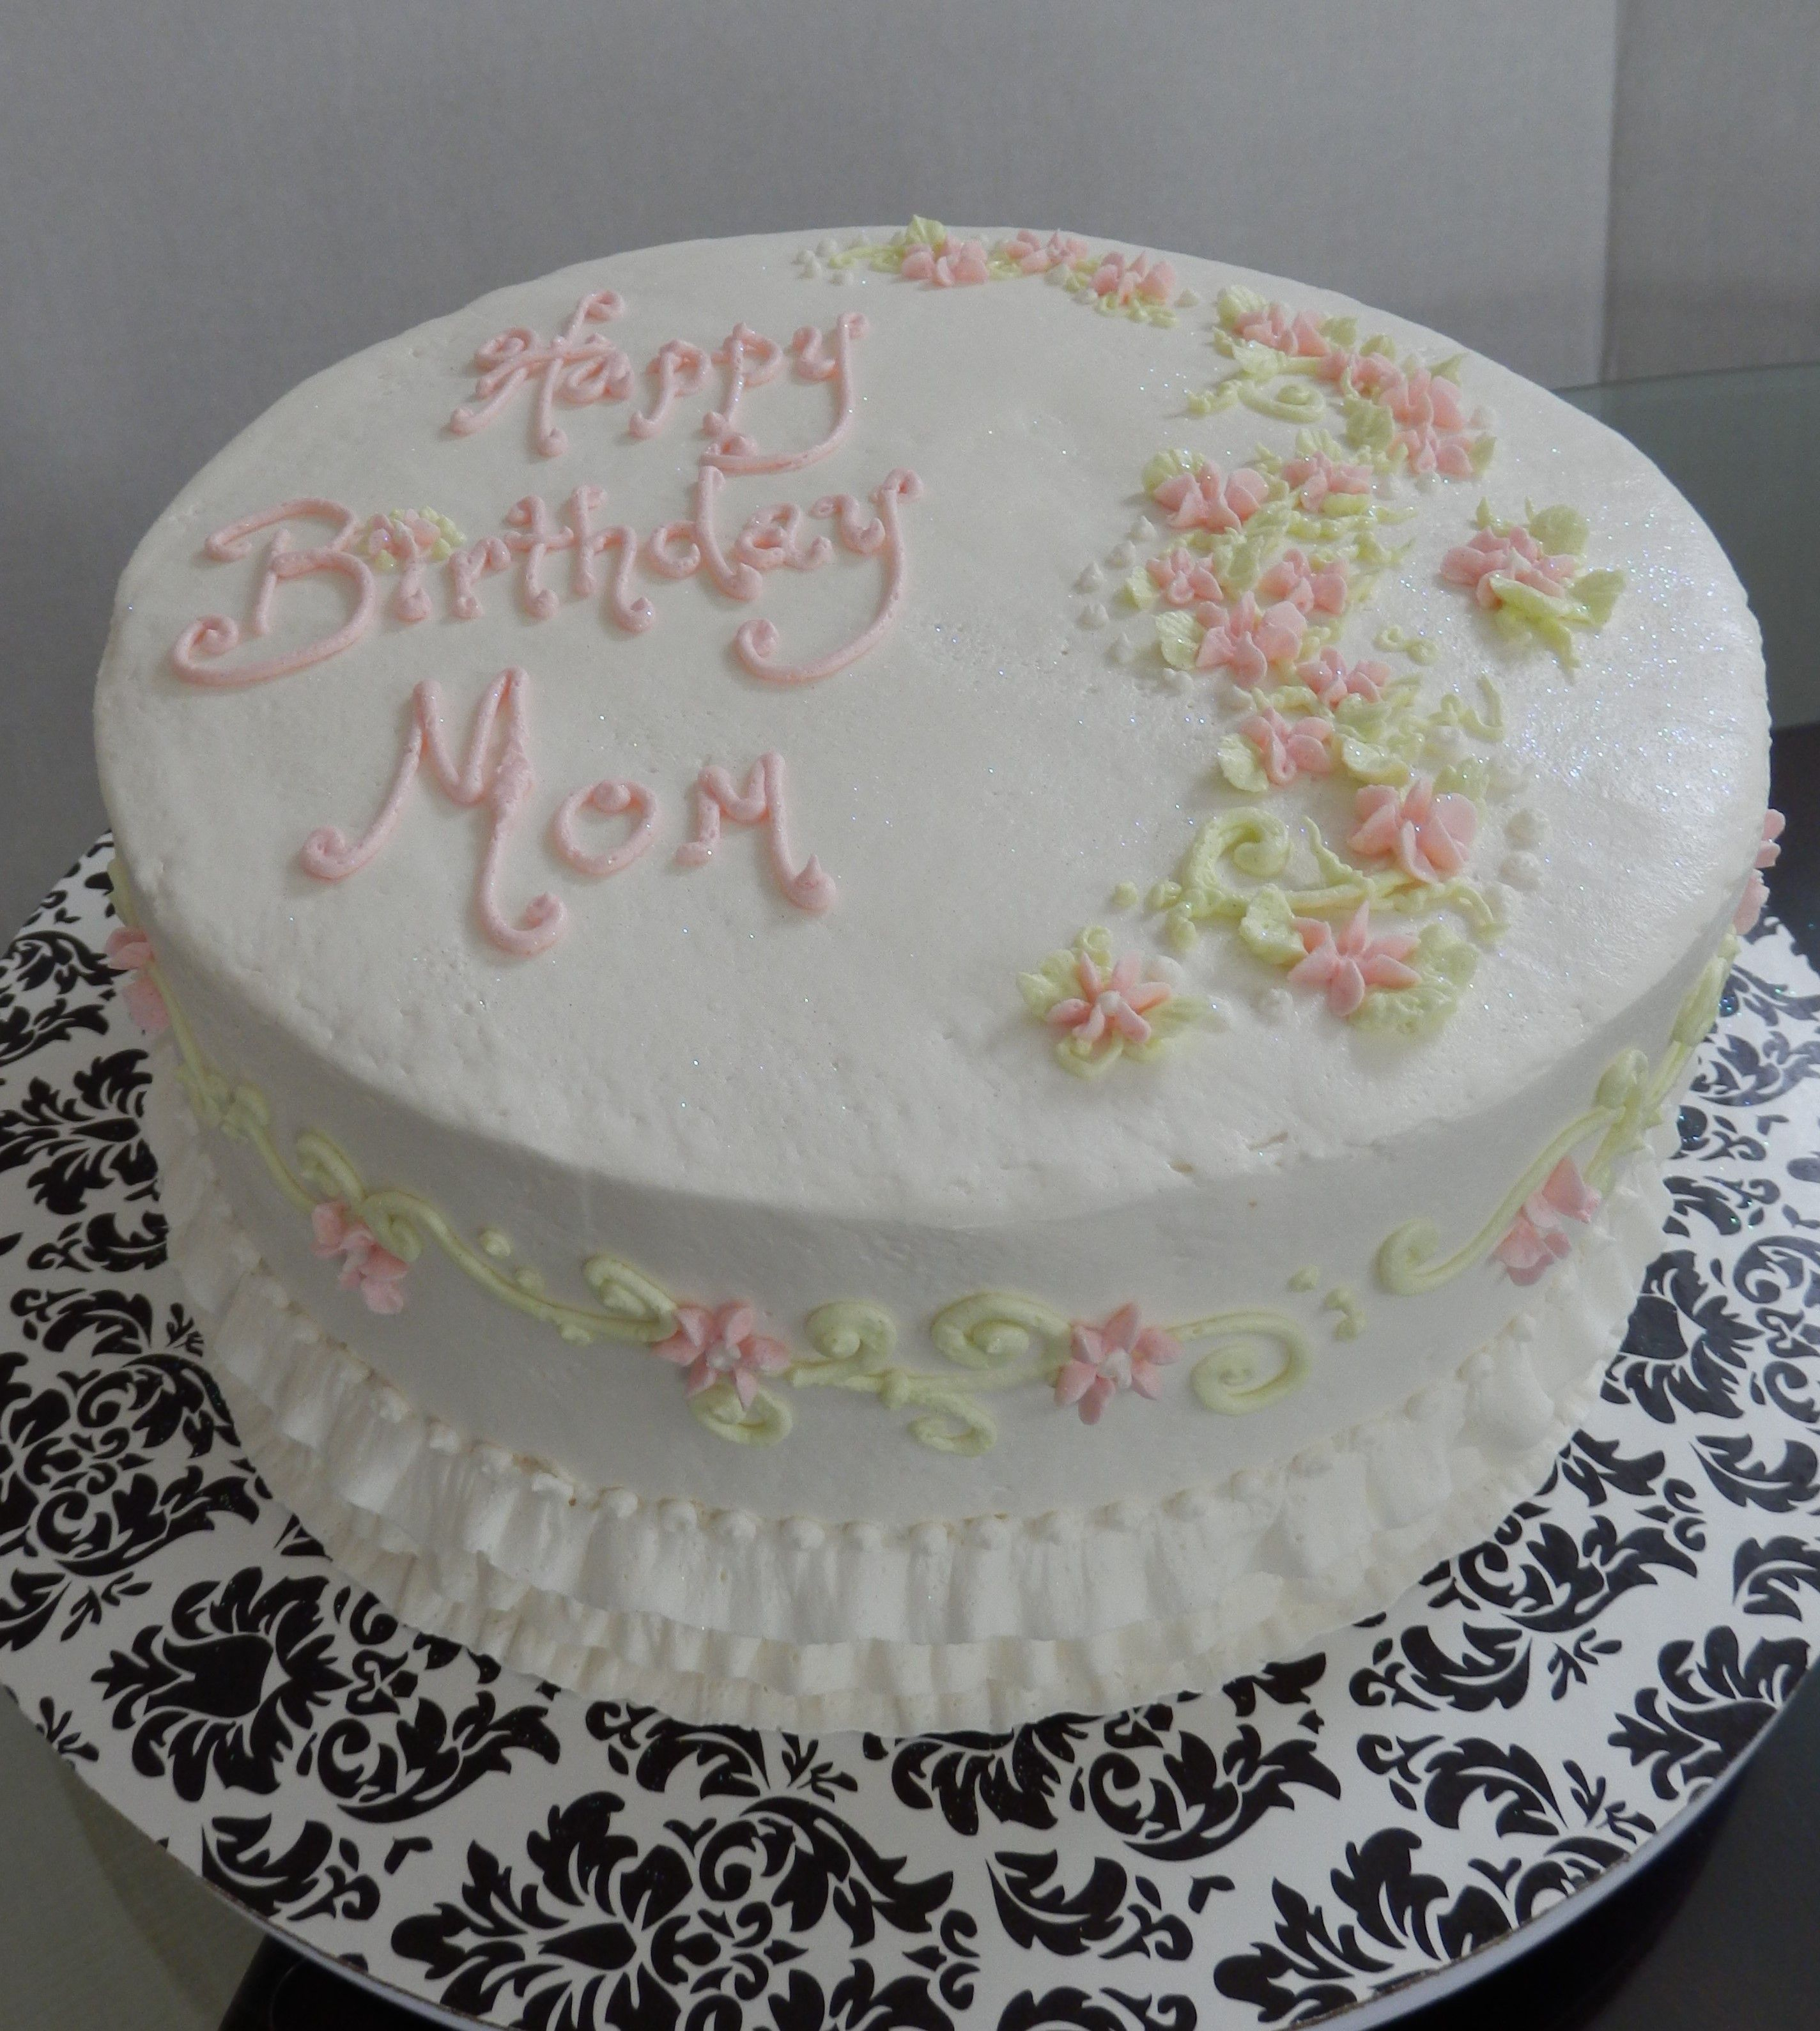 Birthday Cakes For Mom Simple Cake Buttercream Designs Pinterest